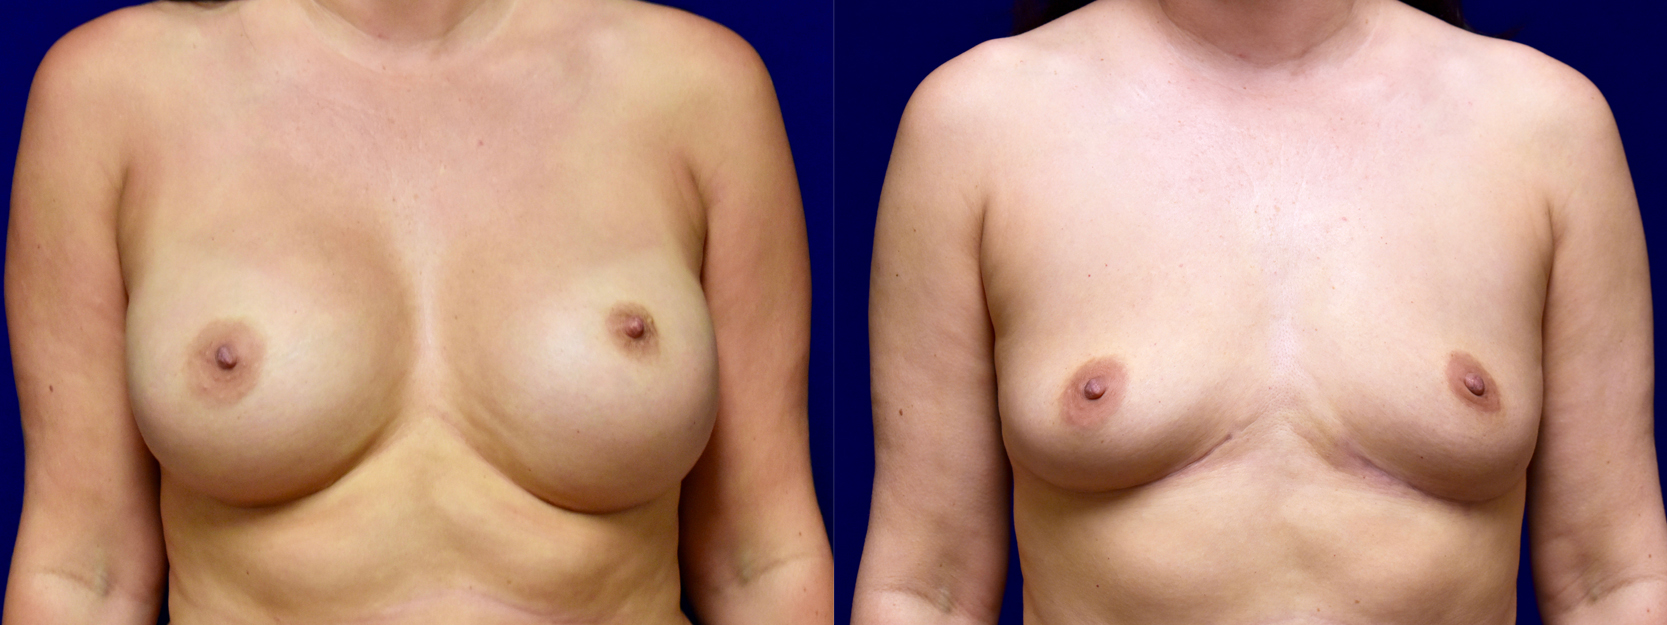 Frontal View - Breast Implant Removal